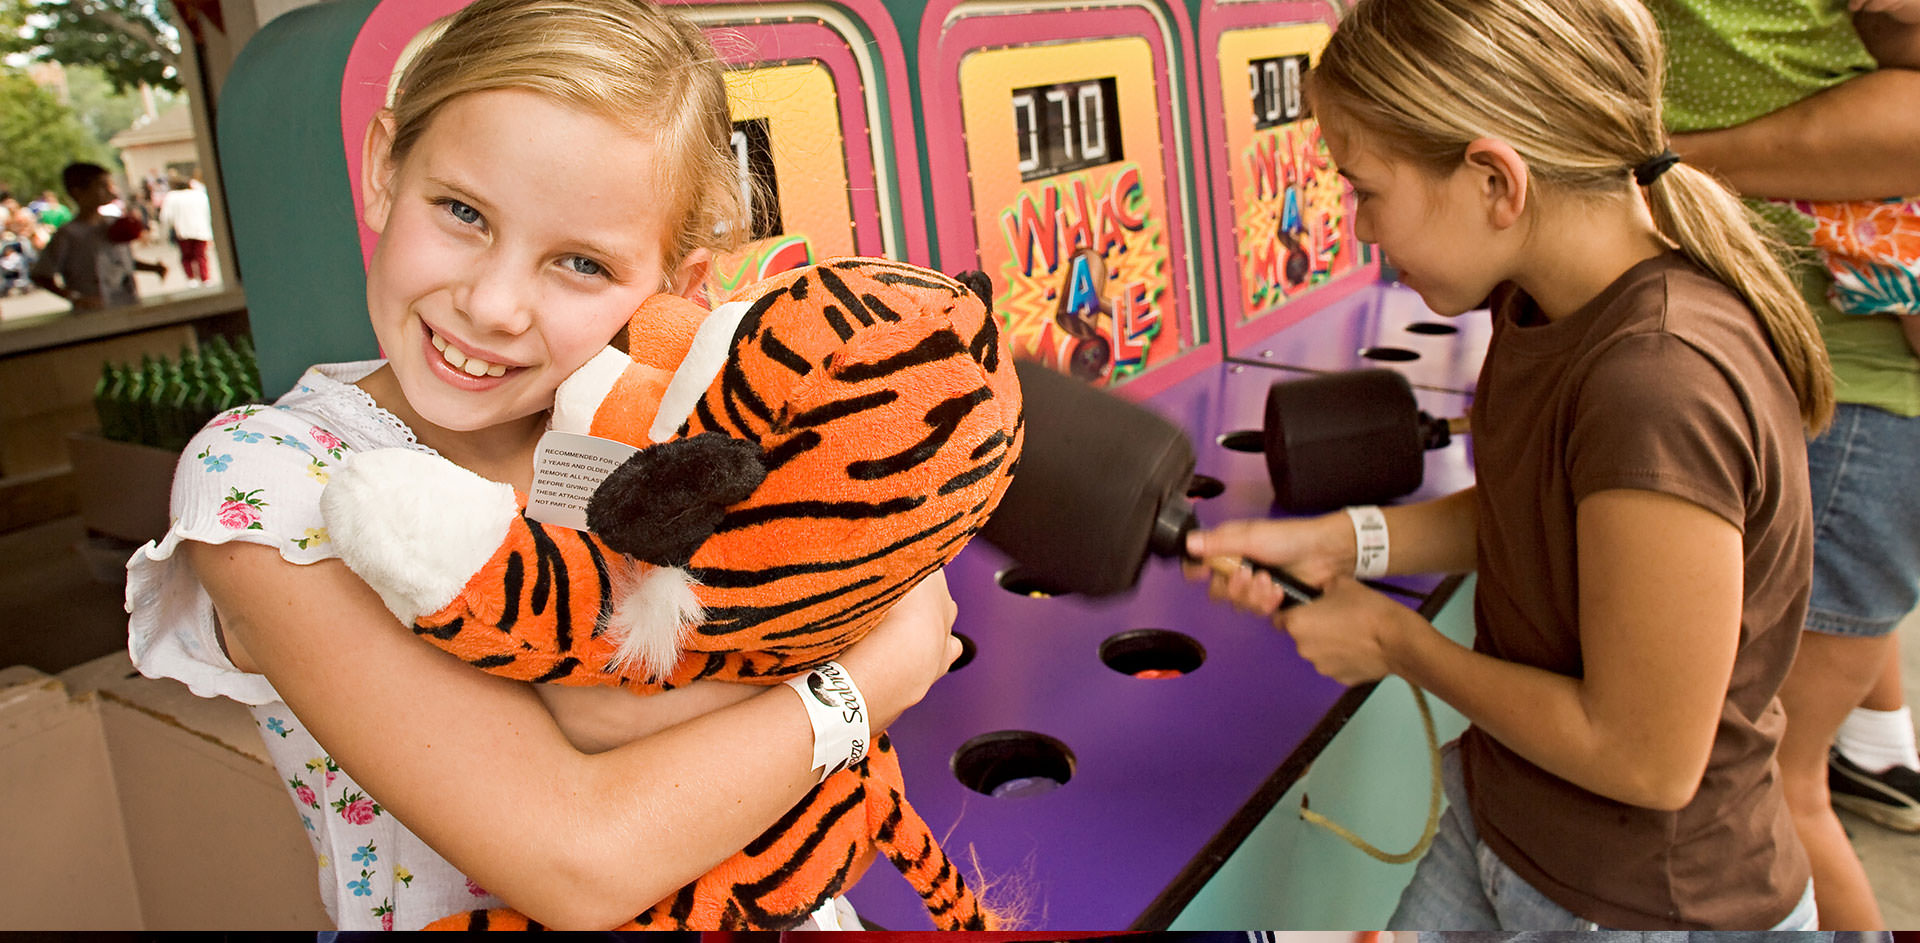 Girl hugging tiger stuffed animal and smiling while other girl plays whack-a-mole at Midway Games.